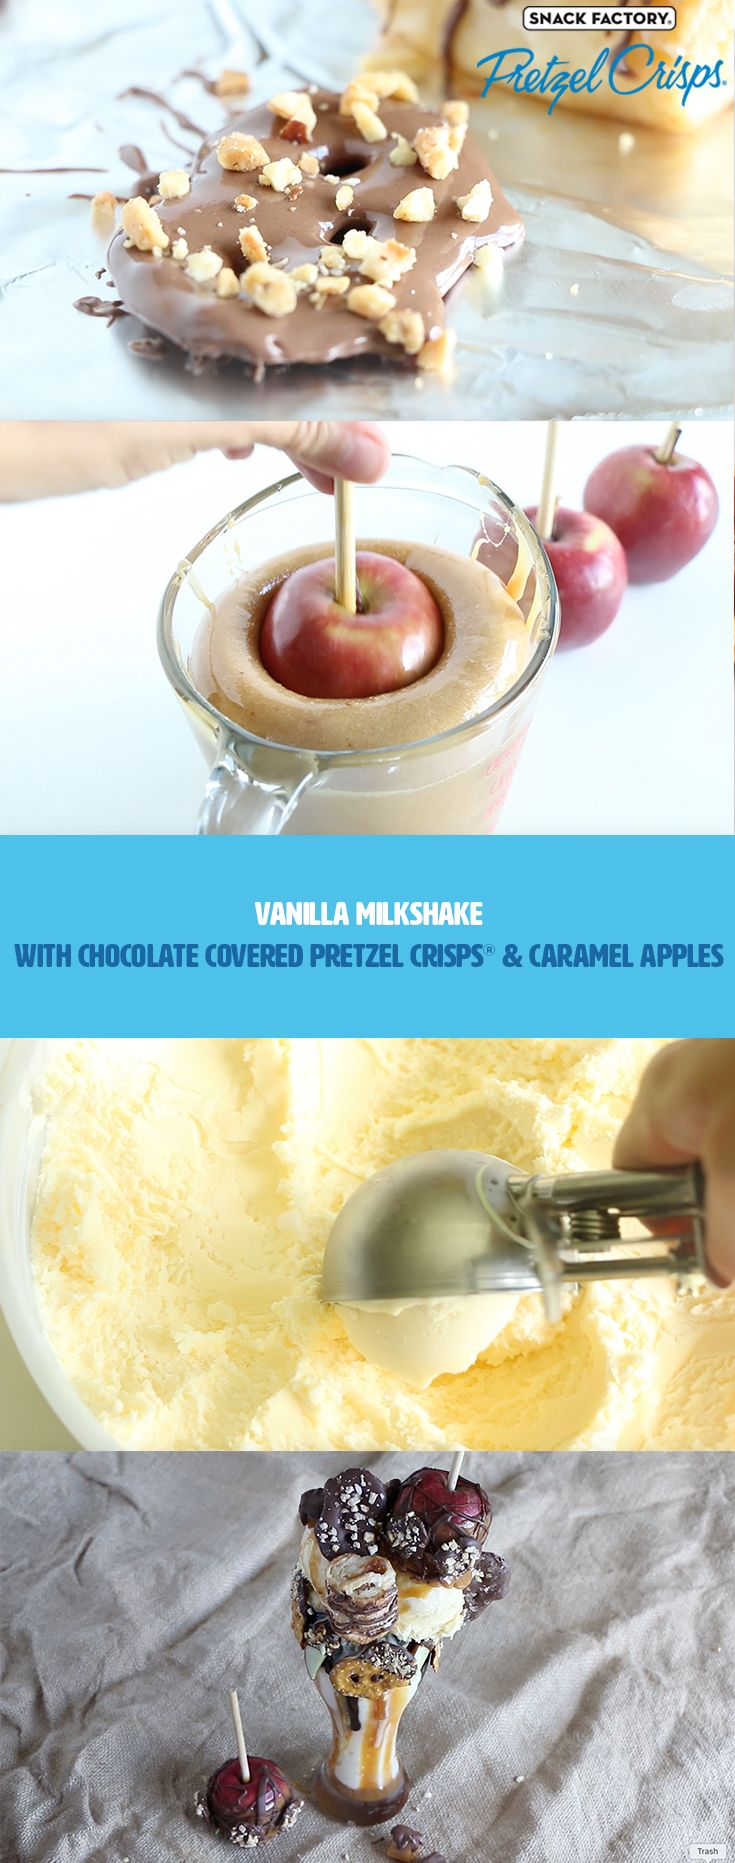 Vanilla Milkshake with Chocolate covered Pretzel Crisps® and Caramel Apples